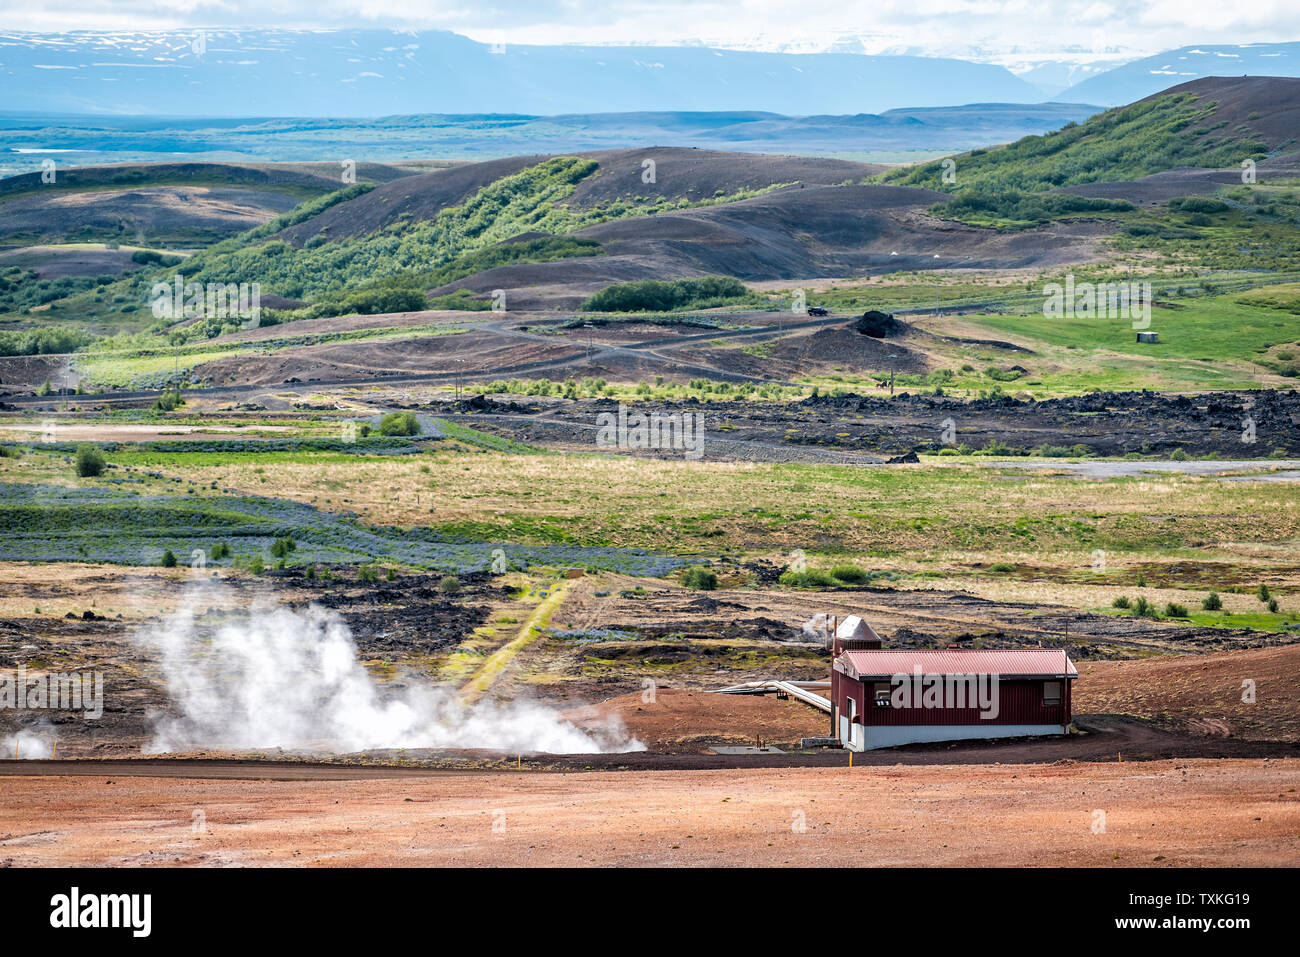 Reykjahlid, Iceland landscape high angle view near lake Myvatn and fumaroles steam vents during cloudy day by house - Stock Image